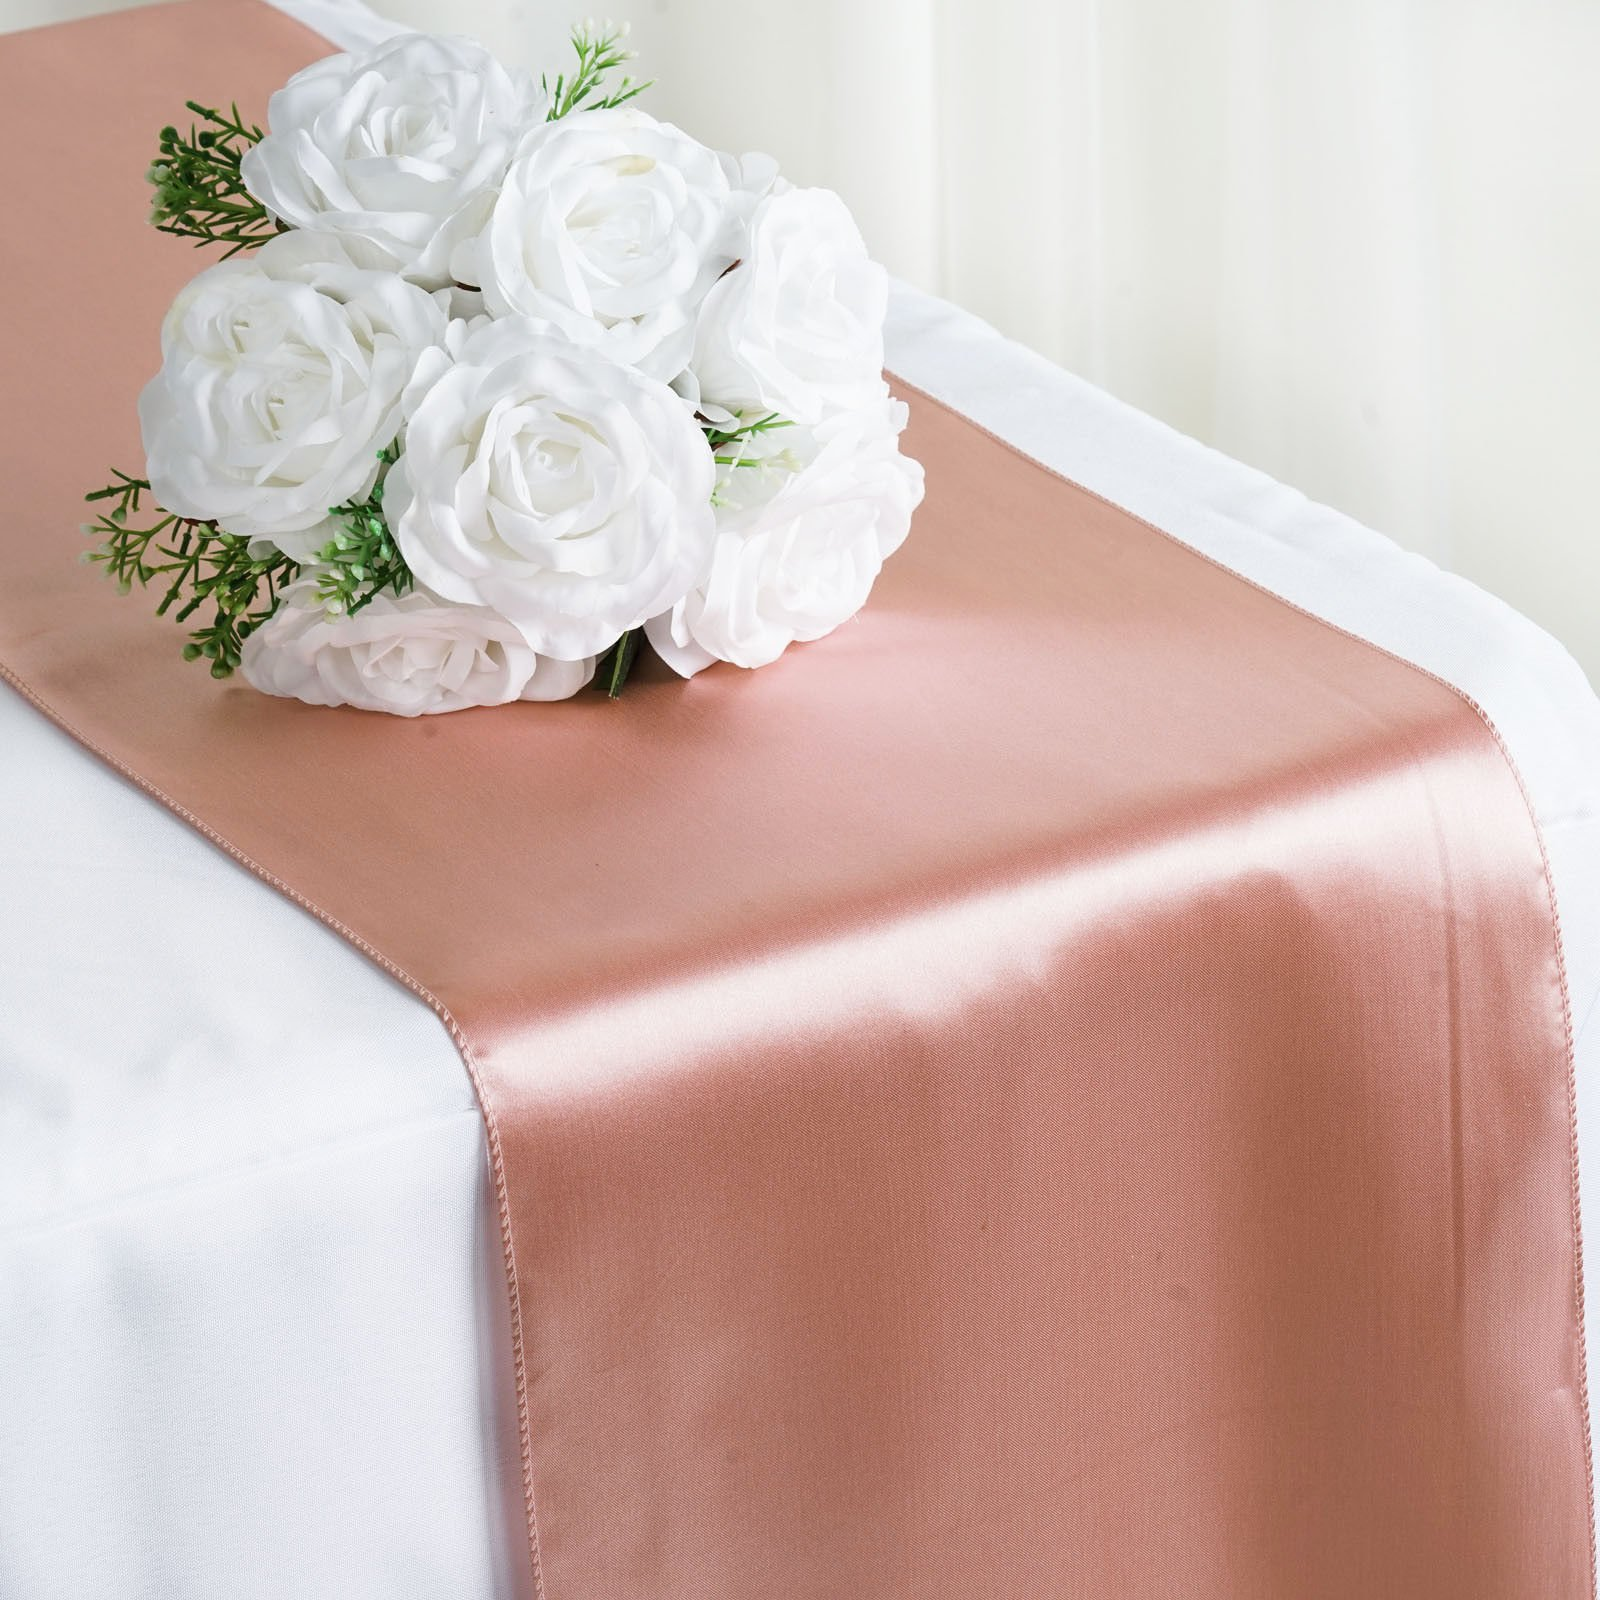 New 12 x 108 inch Satin Table Runner for Wedding Party Function Banquet Event Birthday Home Kitchen Decoration - (10, Mauve)